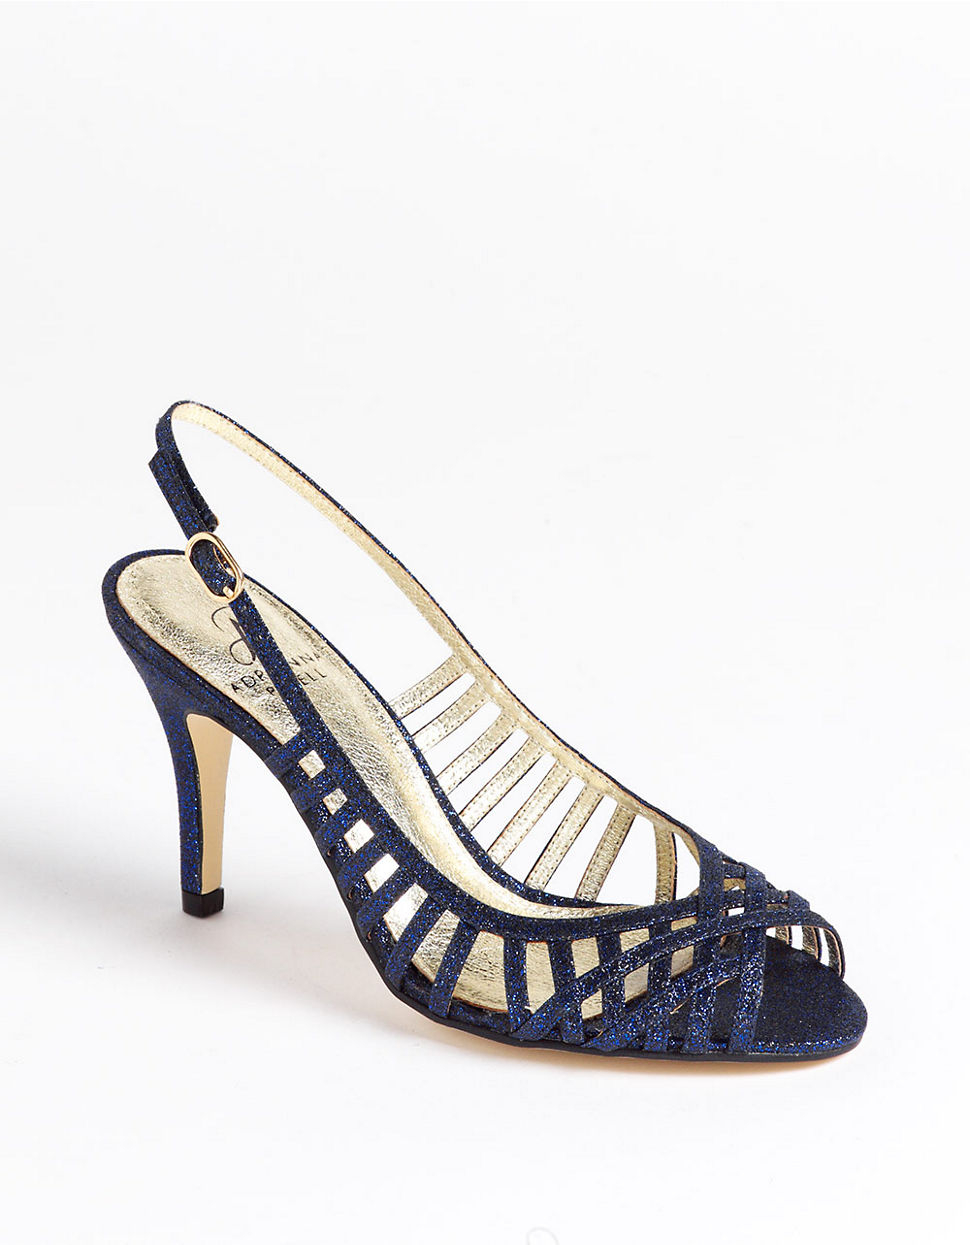 Adrianna Papell Shoes Size